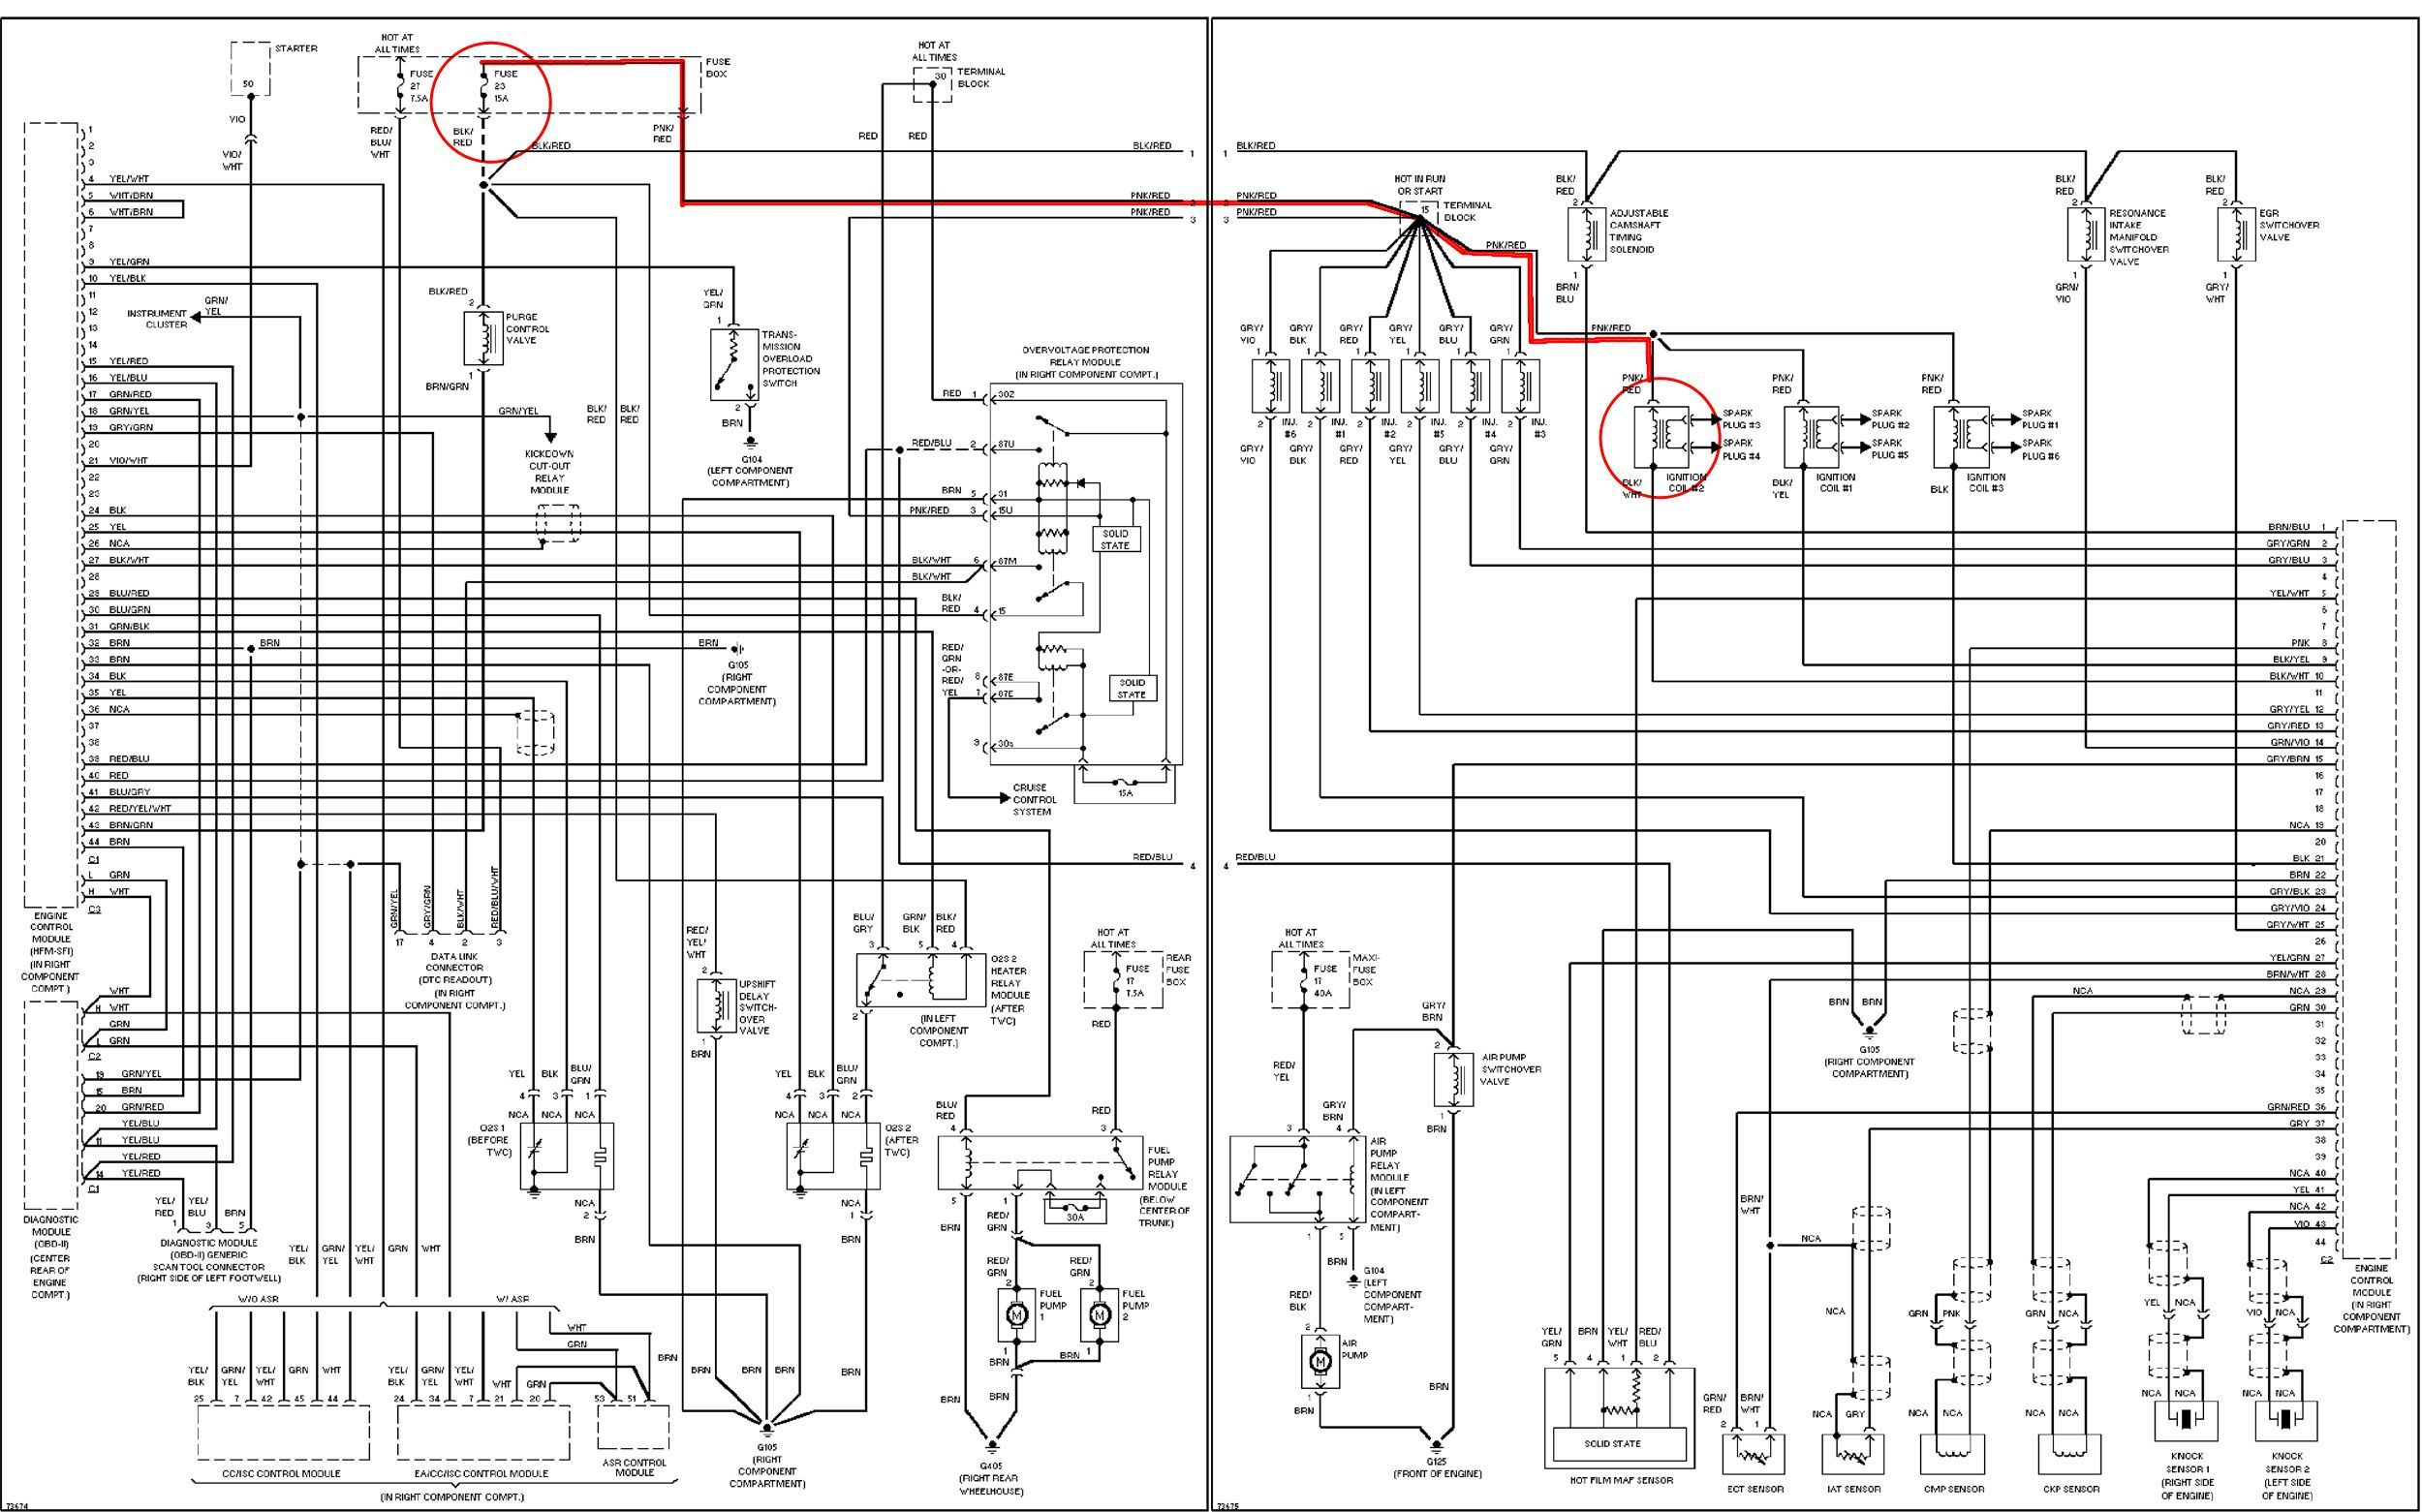 small resolution of mercedes wiring diagram trusted wiring diagram rh 20 nl schoenheitsbrieftaube de mercedes w211 headlight wiring diagram